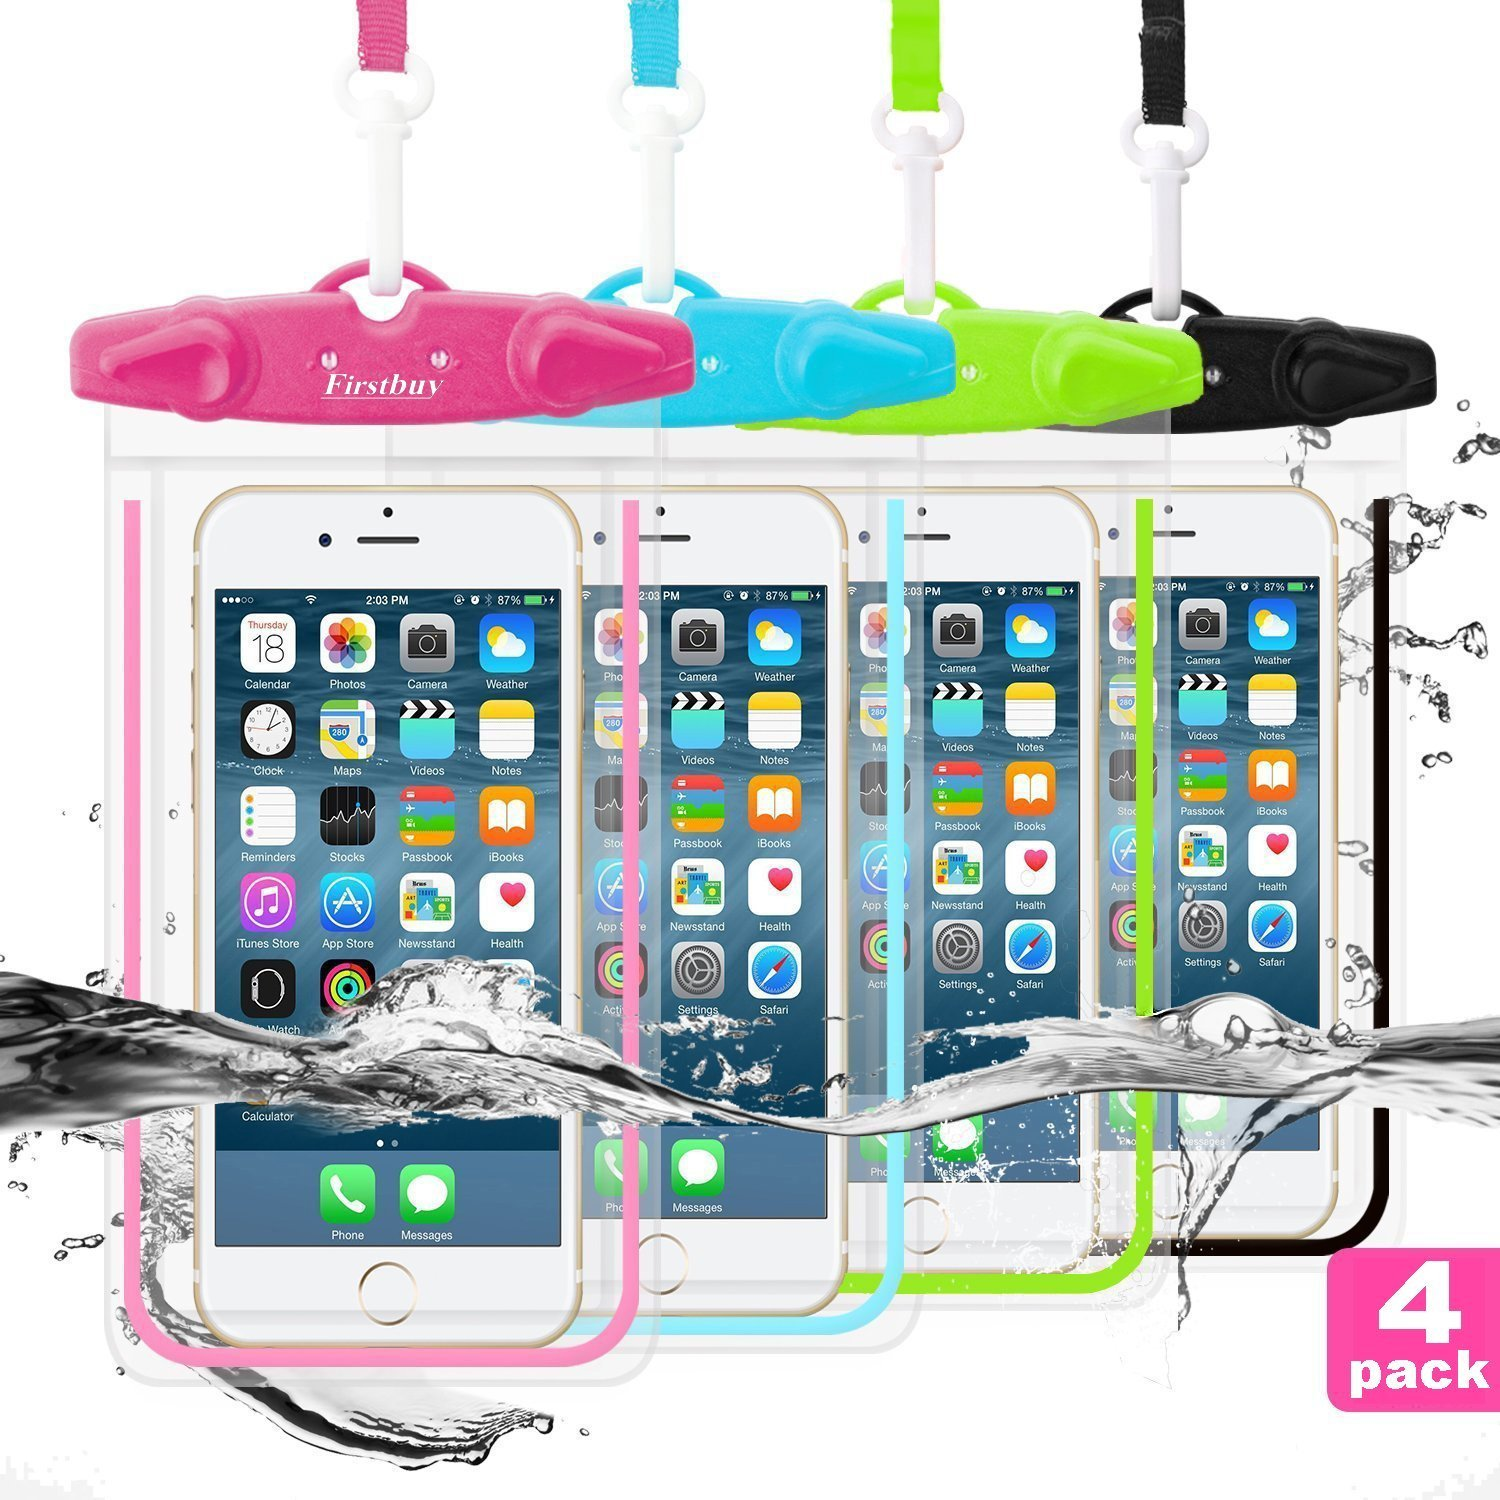 LENPOW Waterproof Phone Case, 4 Pack Universal Waterproof Pouch Dry Bag with Neck Strap Luminous Ornament for Water Games Protect iPhone X 8 7 6 6s Plus 5s Galaxy S9 S8 Edge Note Google Pixel LG HTC by GLBSUNION